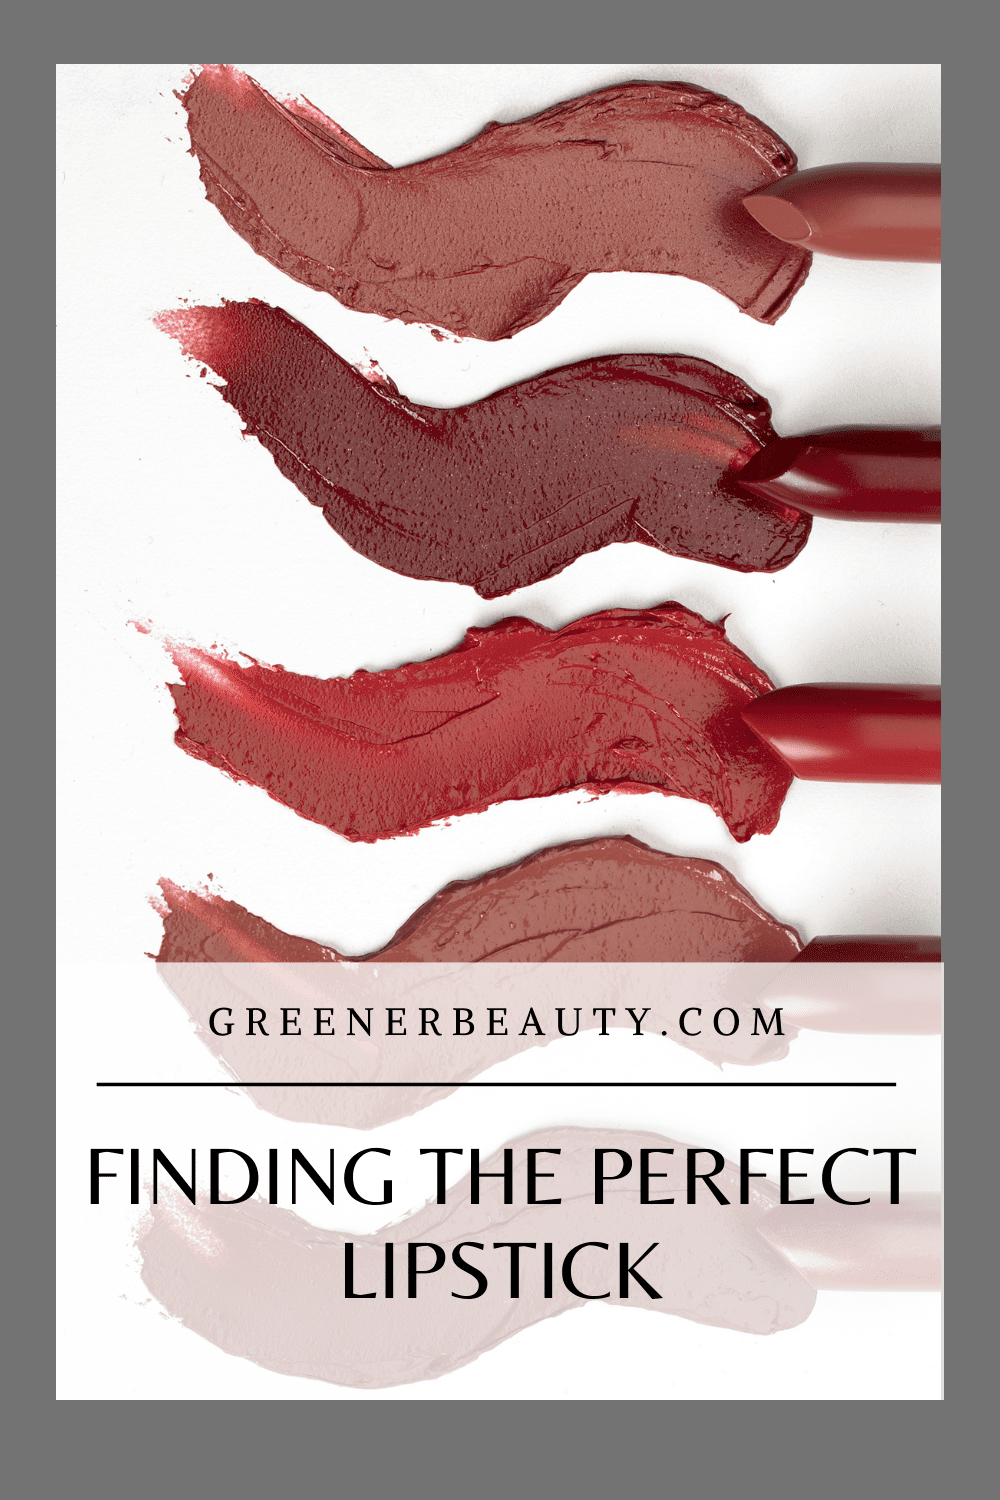 How to Find the Perfect Lipstick